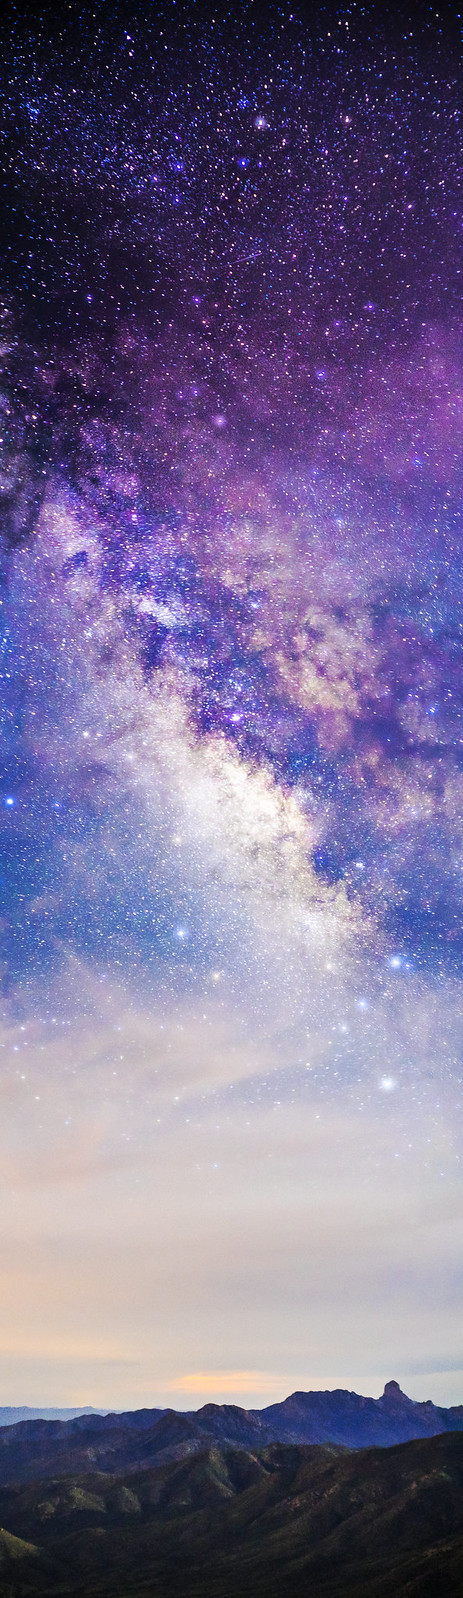 The Galaxy and the Center of the Universe